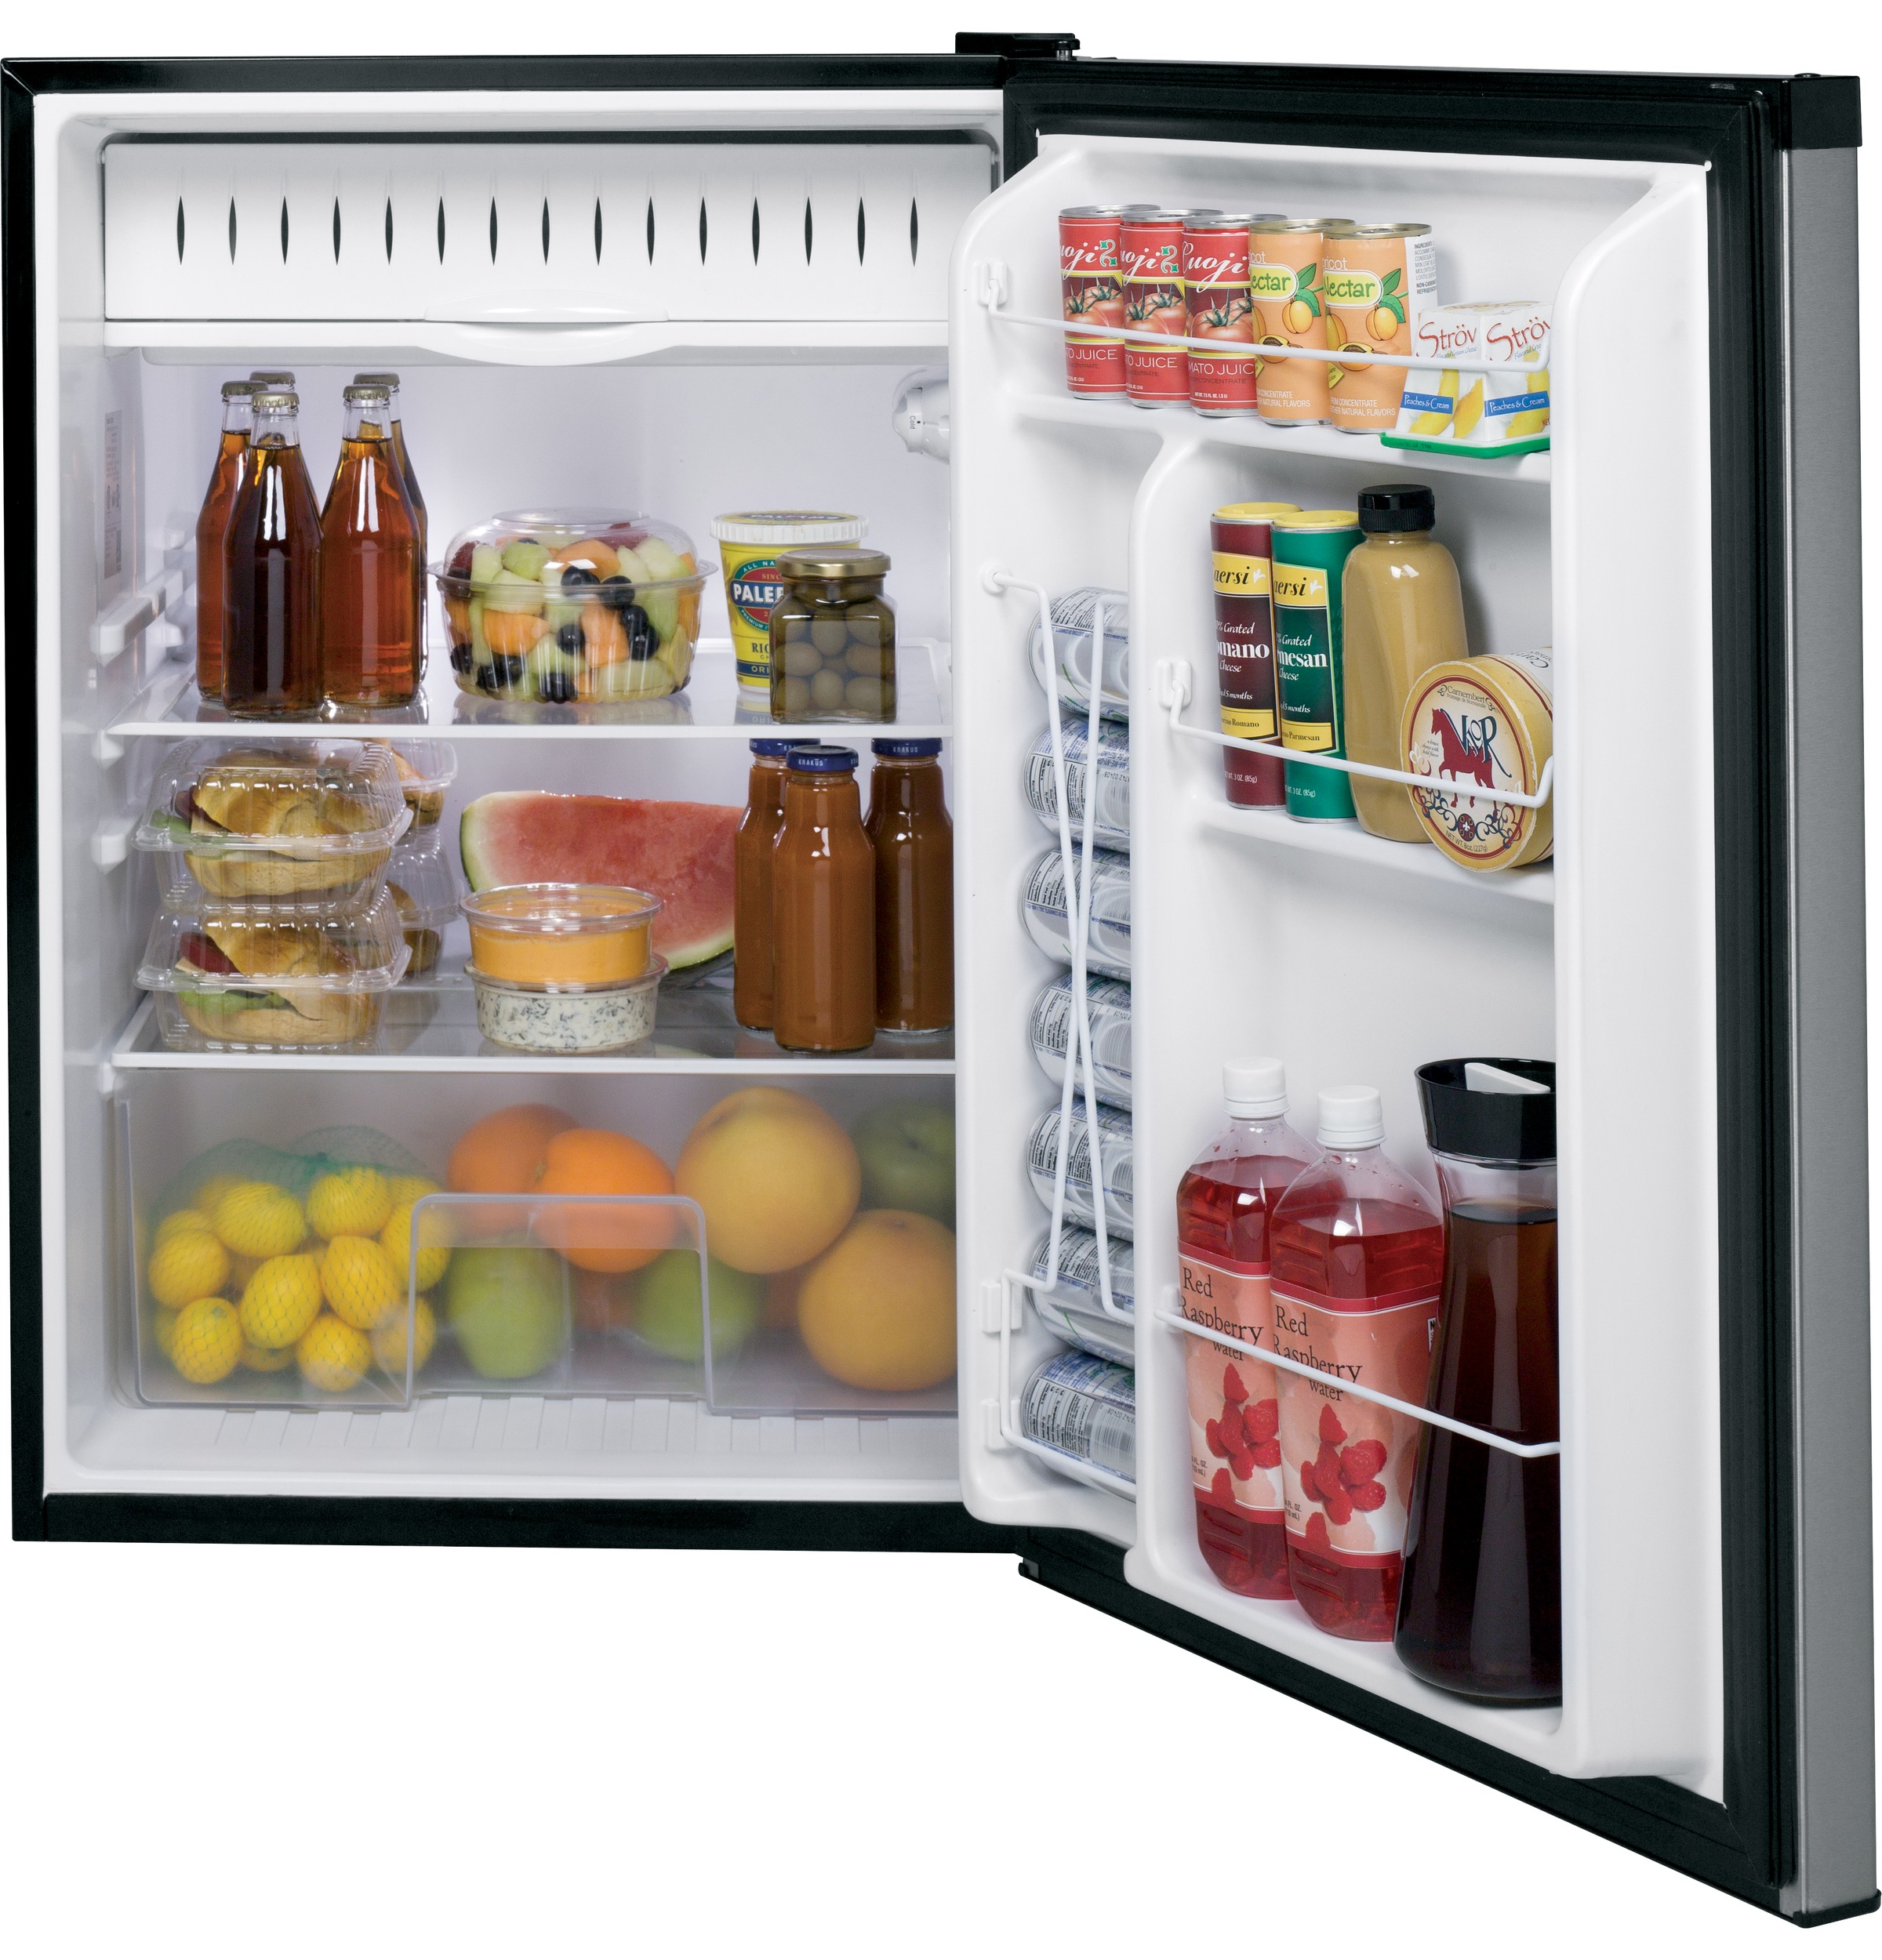 Model: GCE06GSHSB | GE GE® Compact Refrigerator